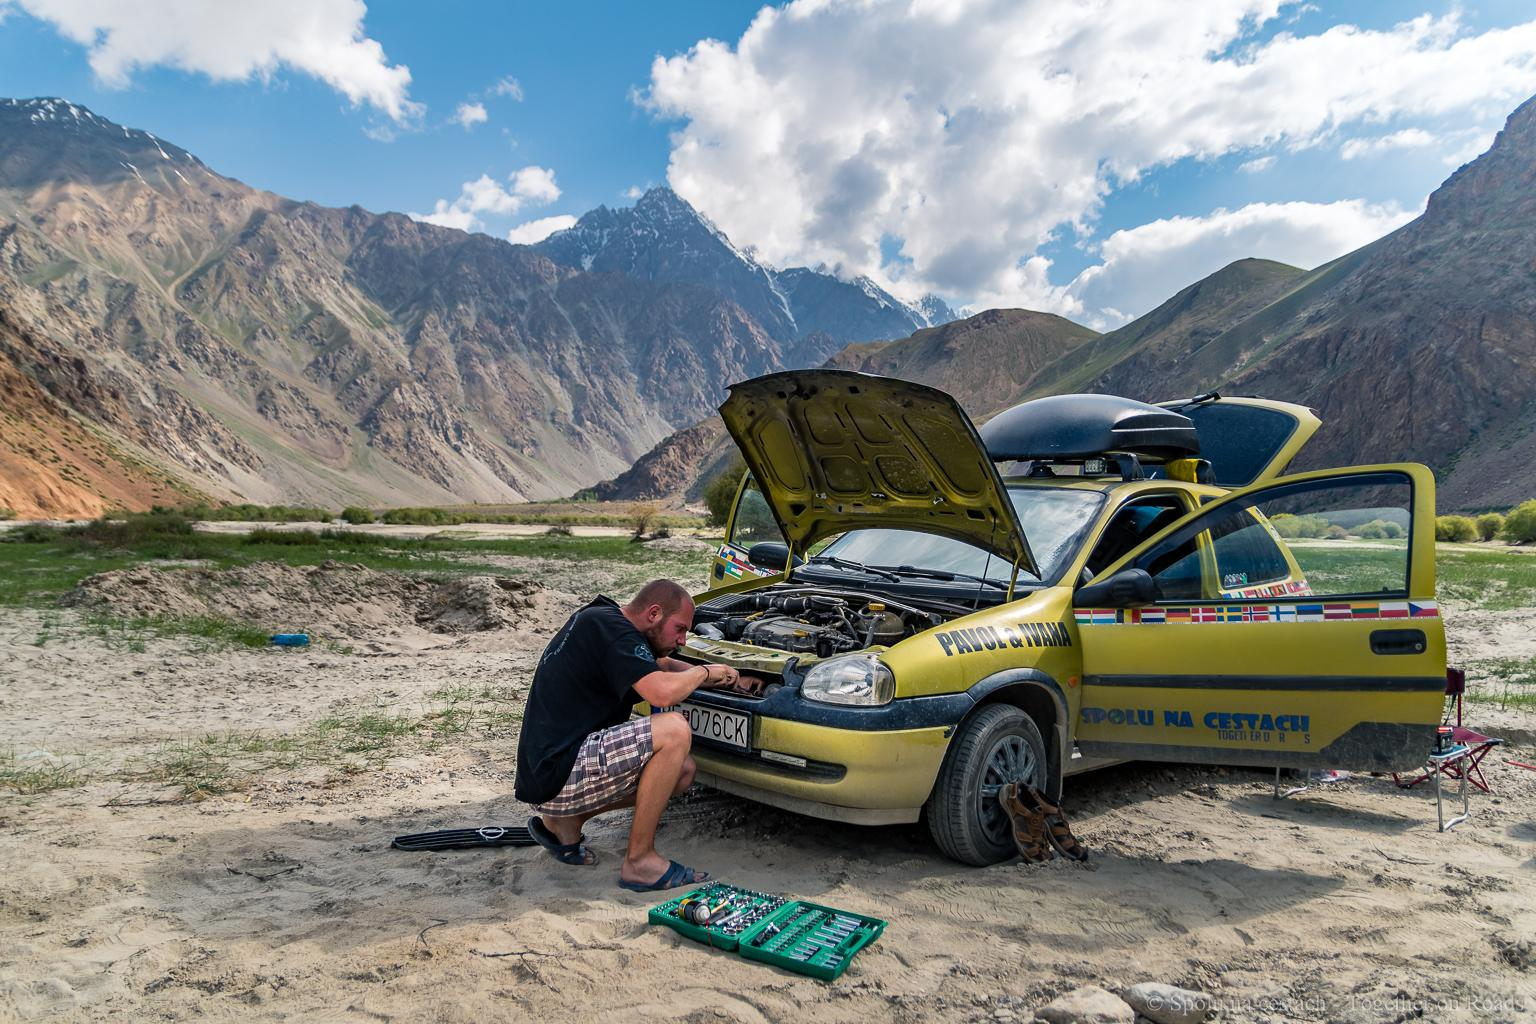 Tajikistan - Pamir Highway, fixinf of small issue